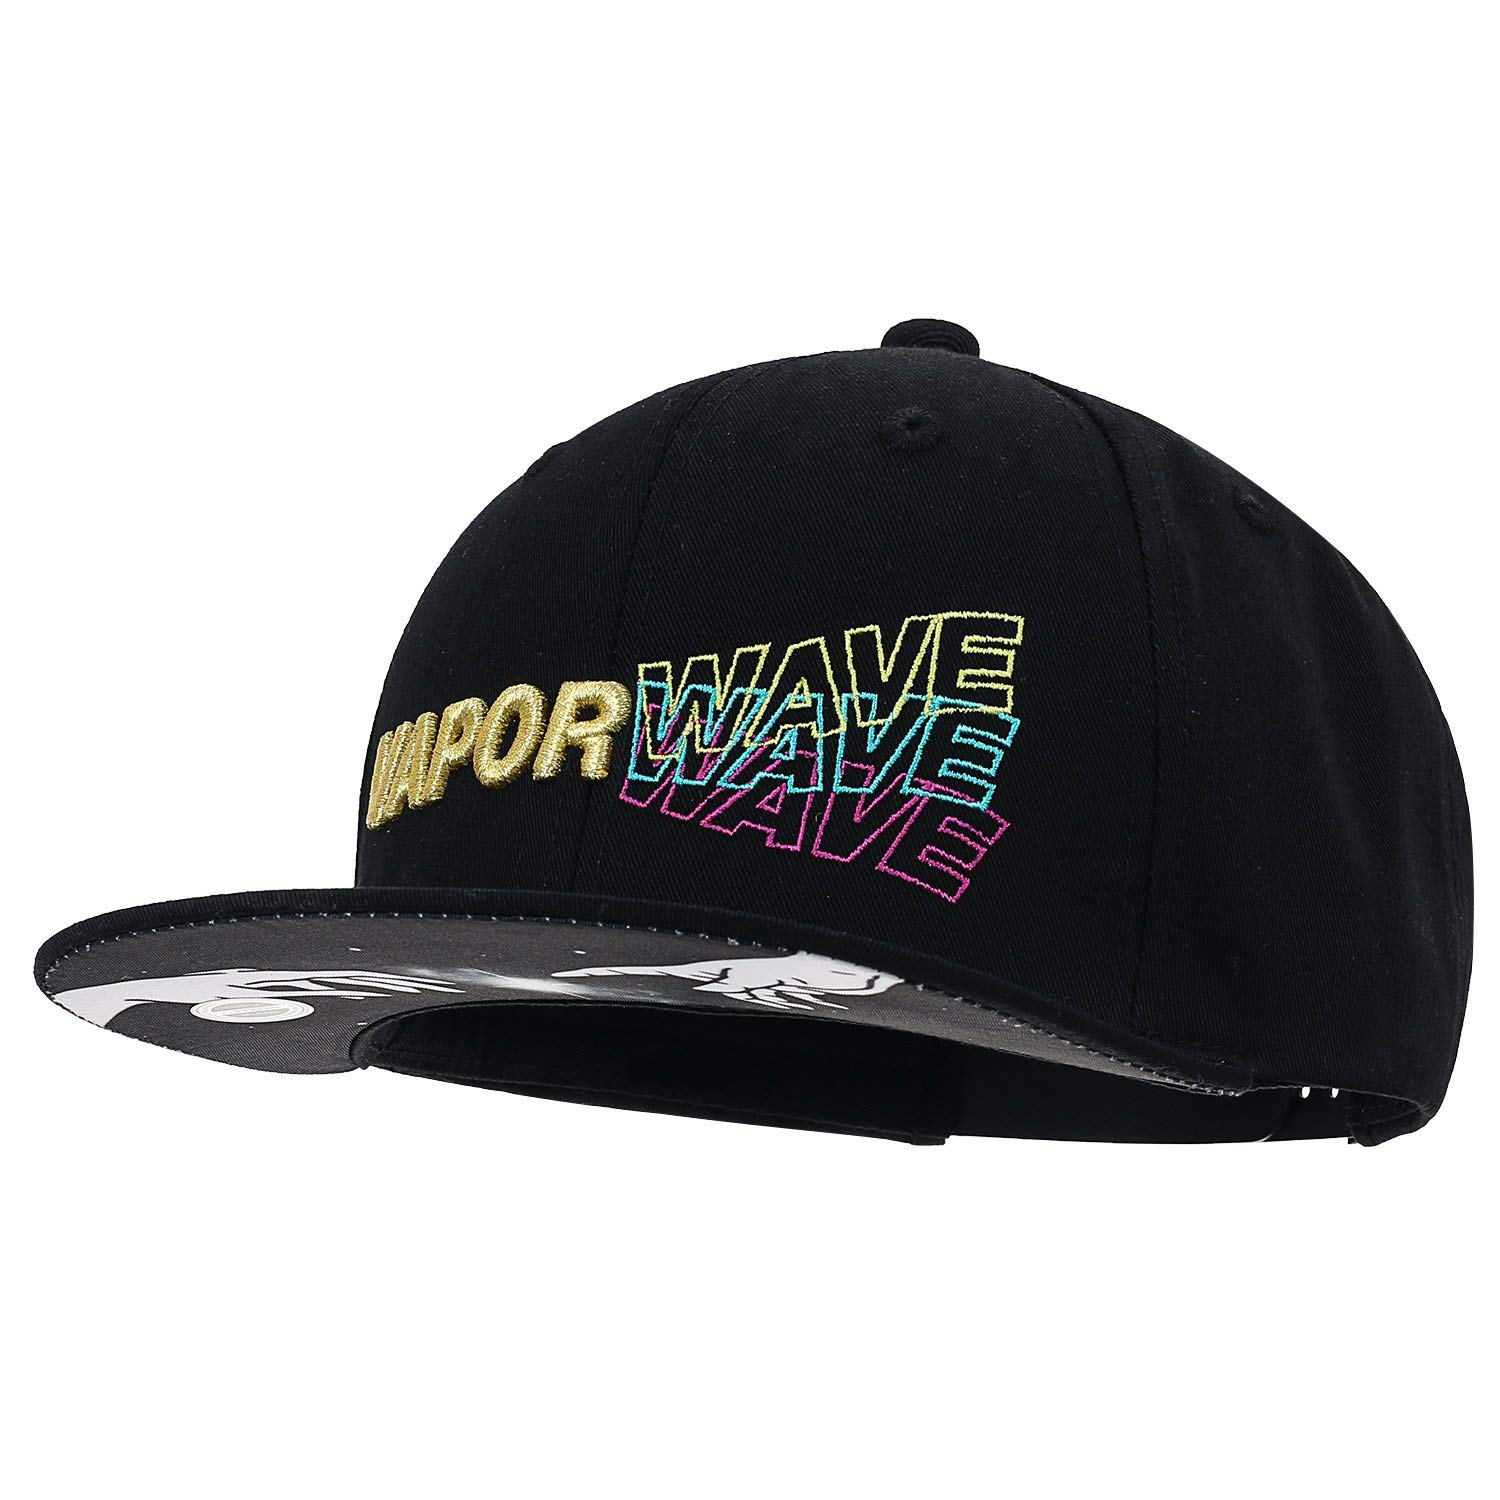 abfeded727c66d Get Quotations · ililily Vaporwave Embroidery Trucker Hat Cotton Flat Bill  Snapback Baseball Cap